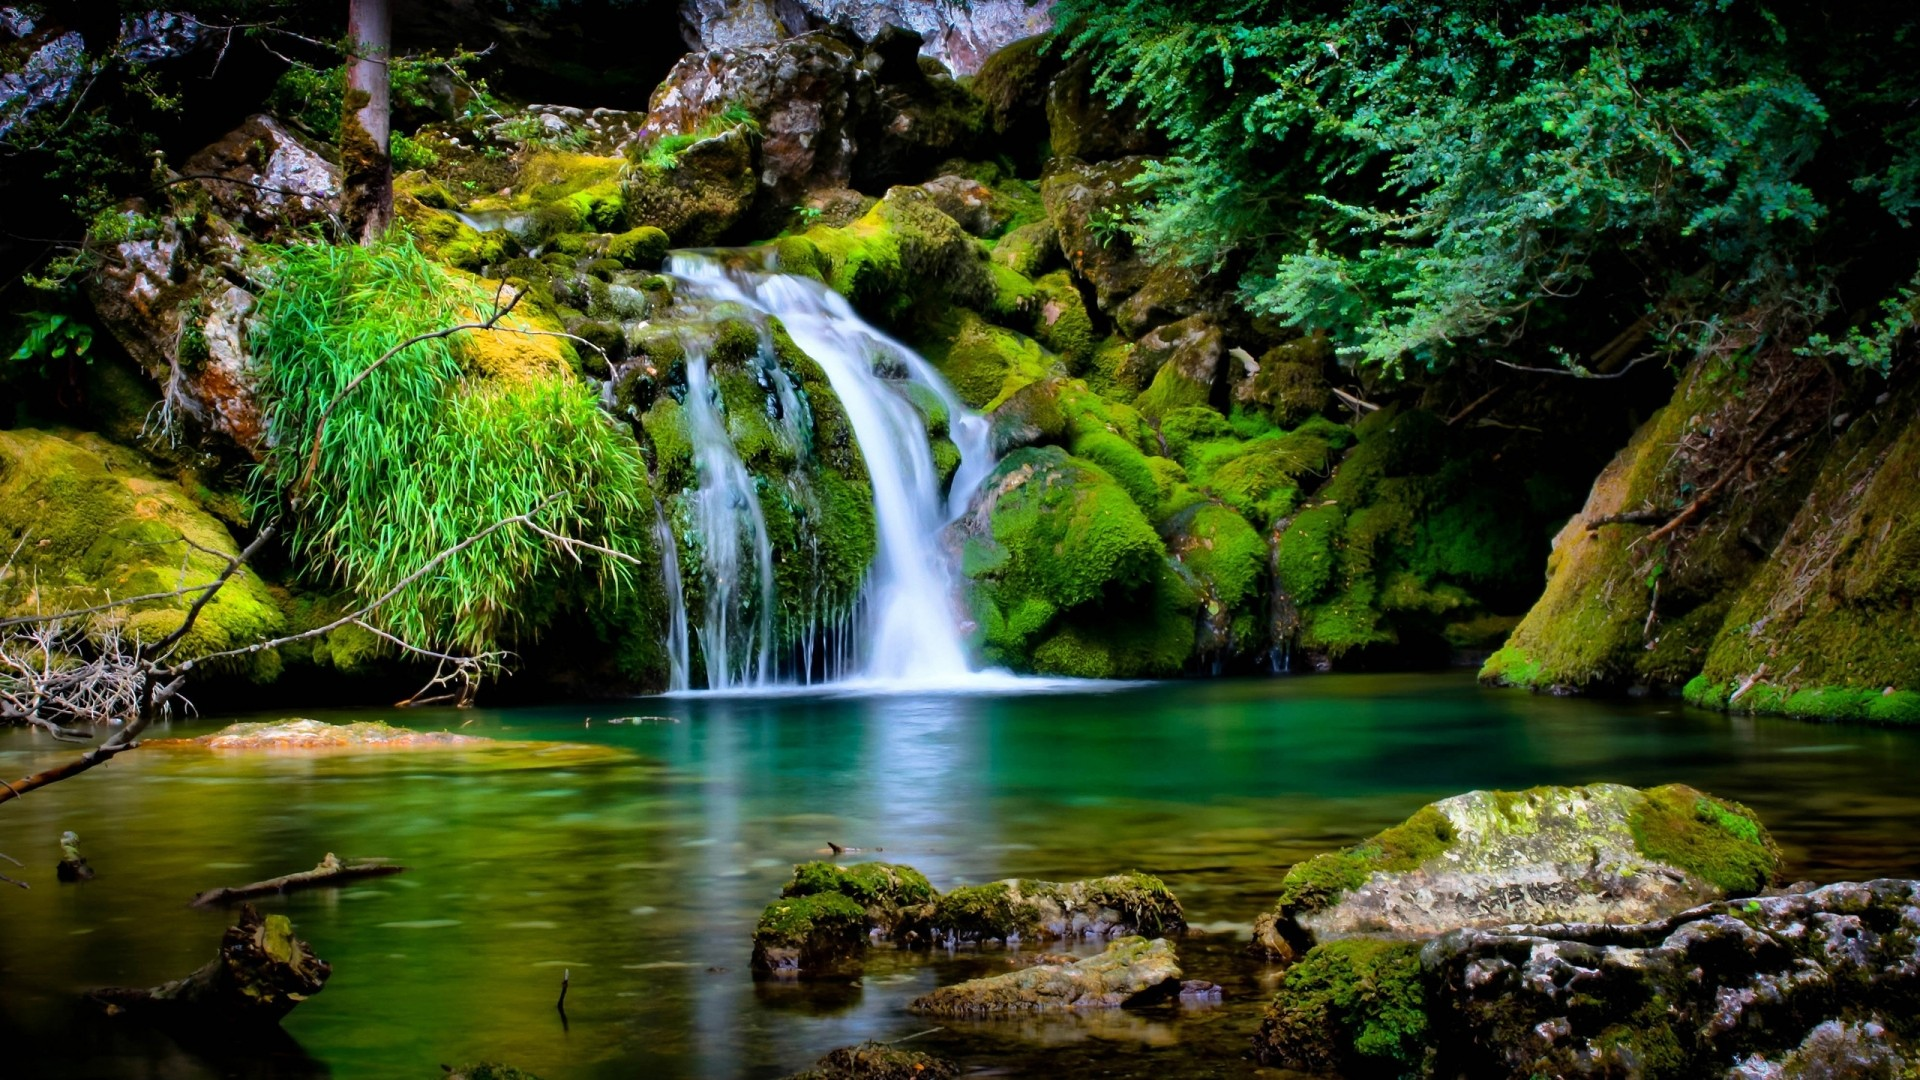 Background Images Of Waterfalls Group (76+)